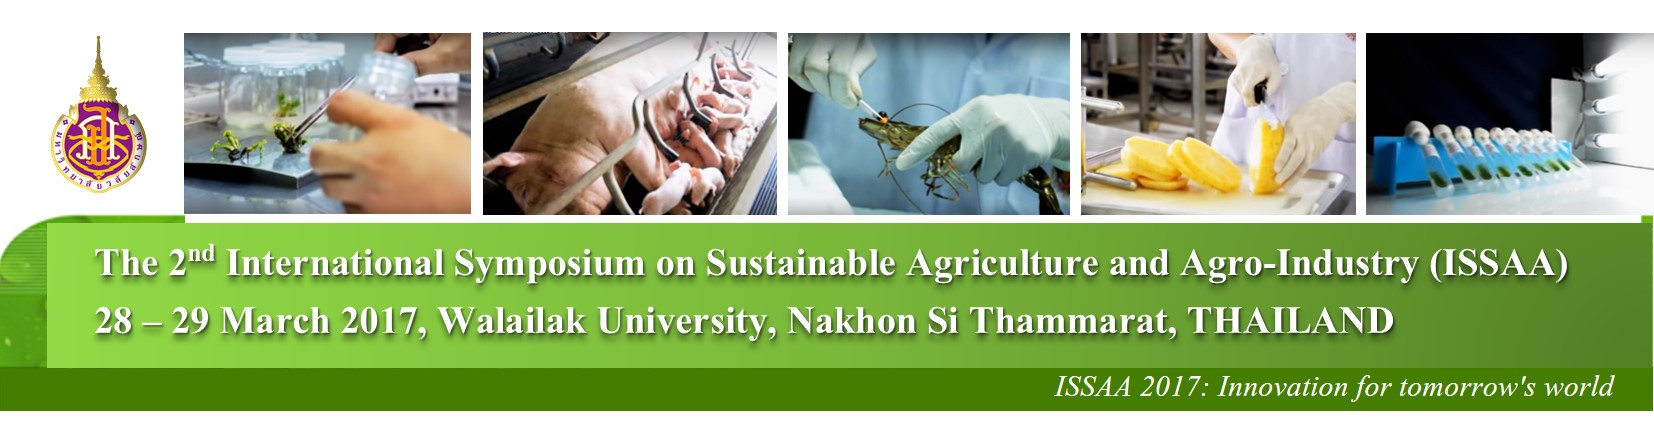 International Symposium on Sustainable Agriculture and Agro-Industry